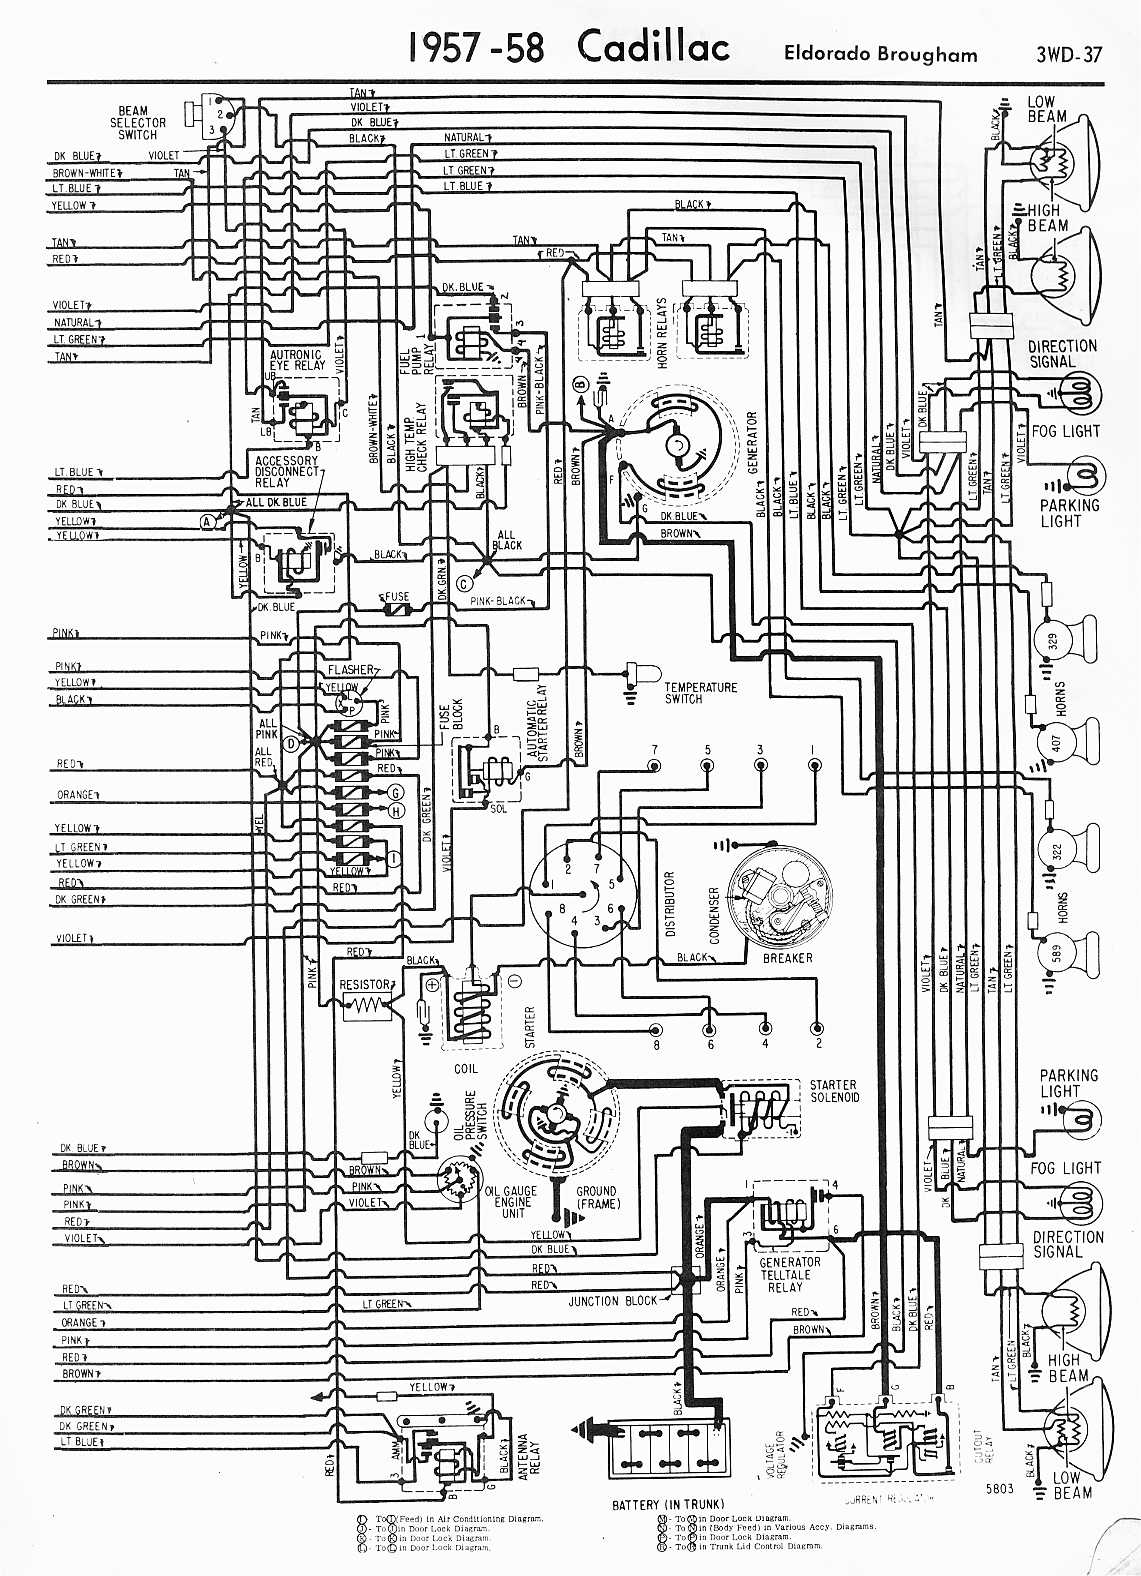 2000 Cadillac Deville Wiring Harness Diagram Opinions About 426 Hemi Distributor Eldorado Detailed Schematics Rh Keyplusrubber Com 1997 Diagrams Bluetooth Speaker